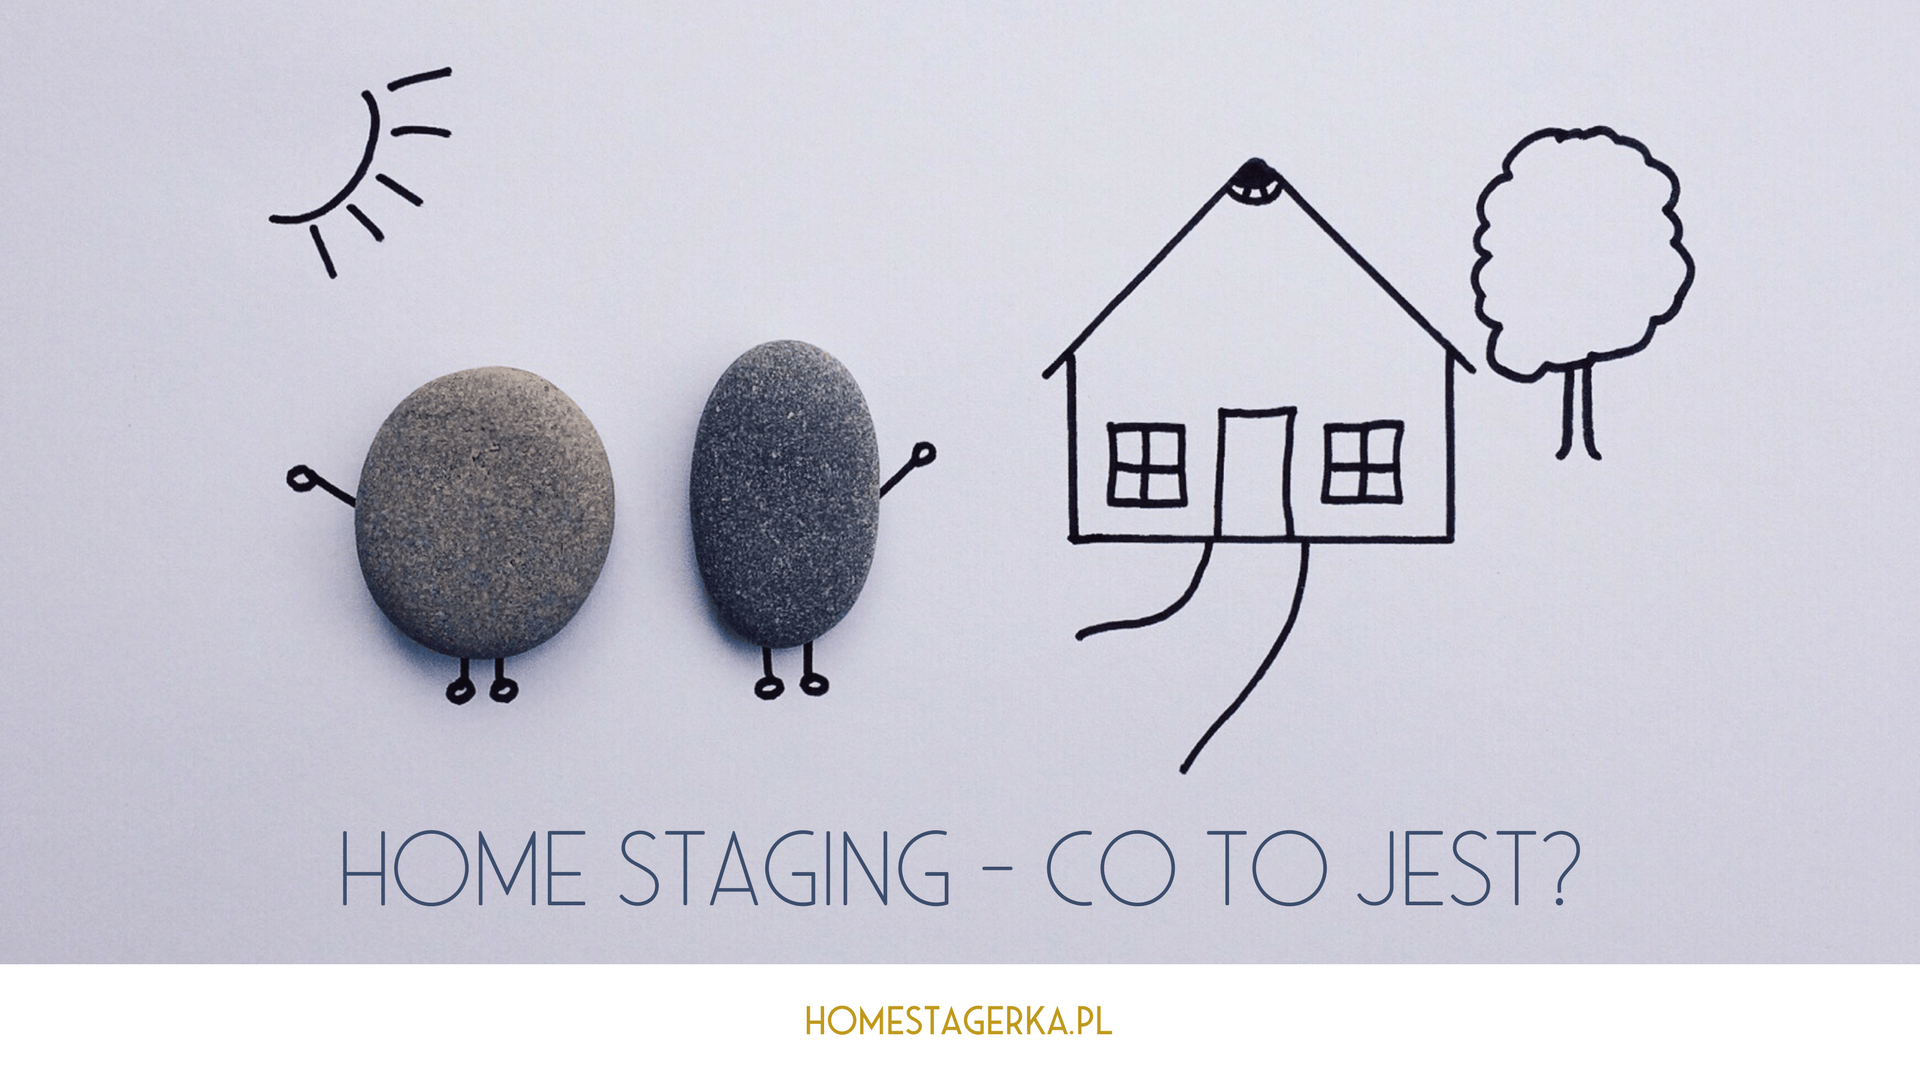 home staging - co to jest?